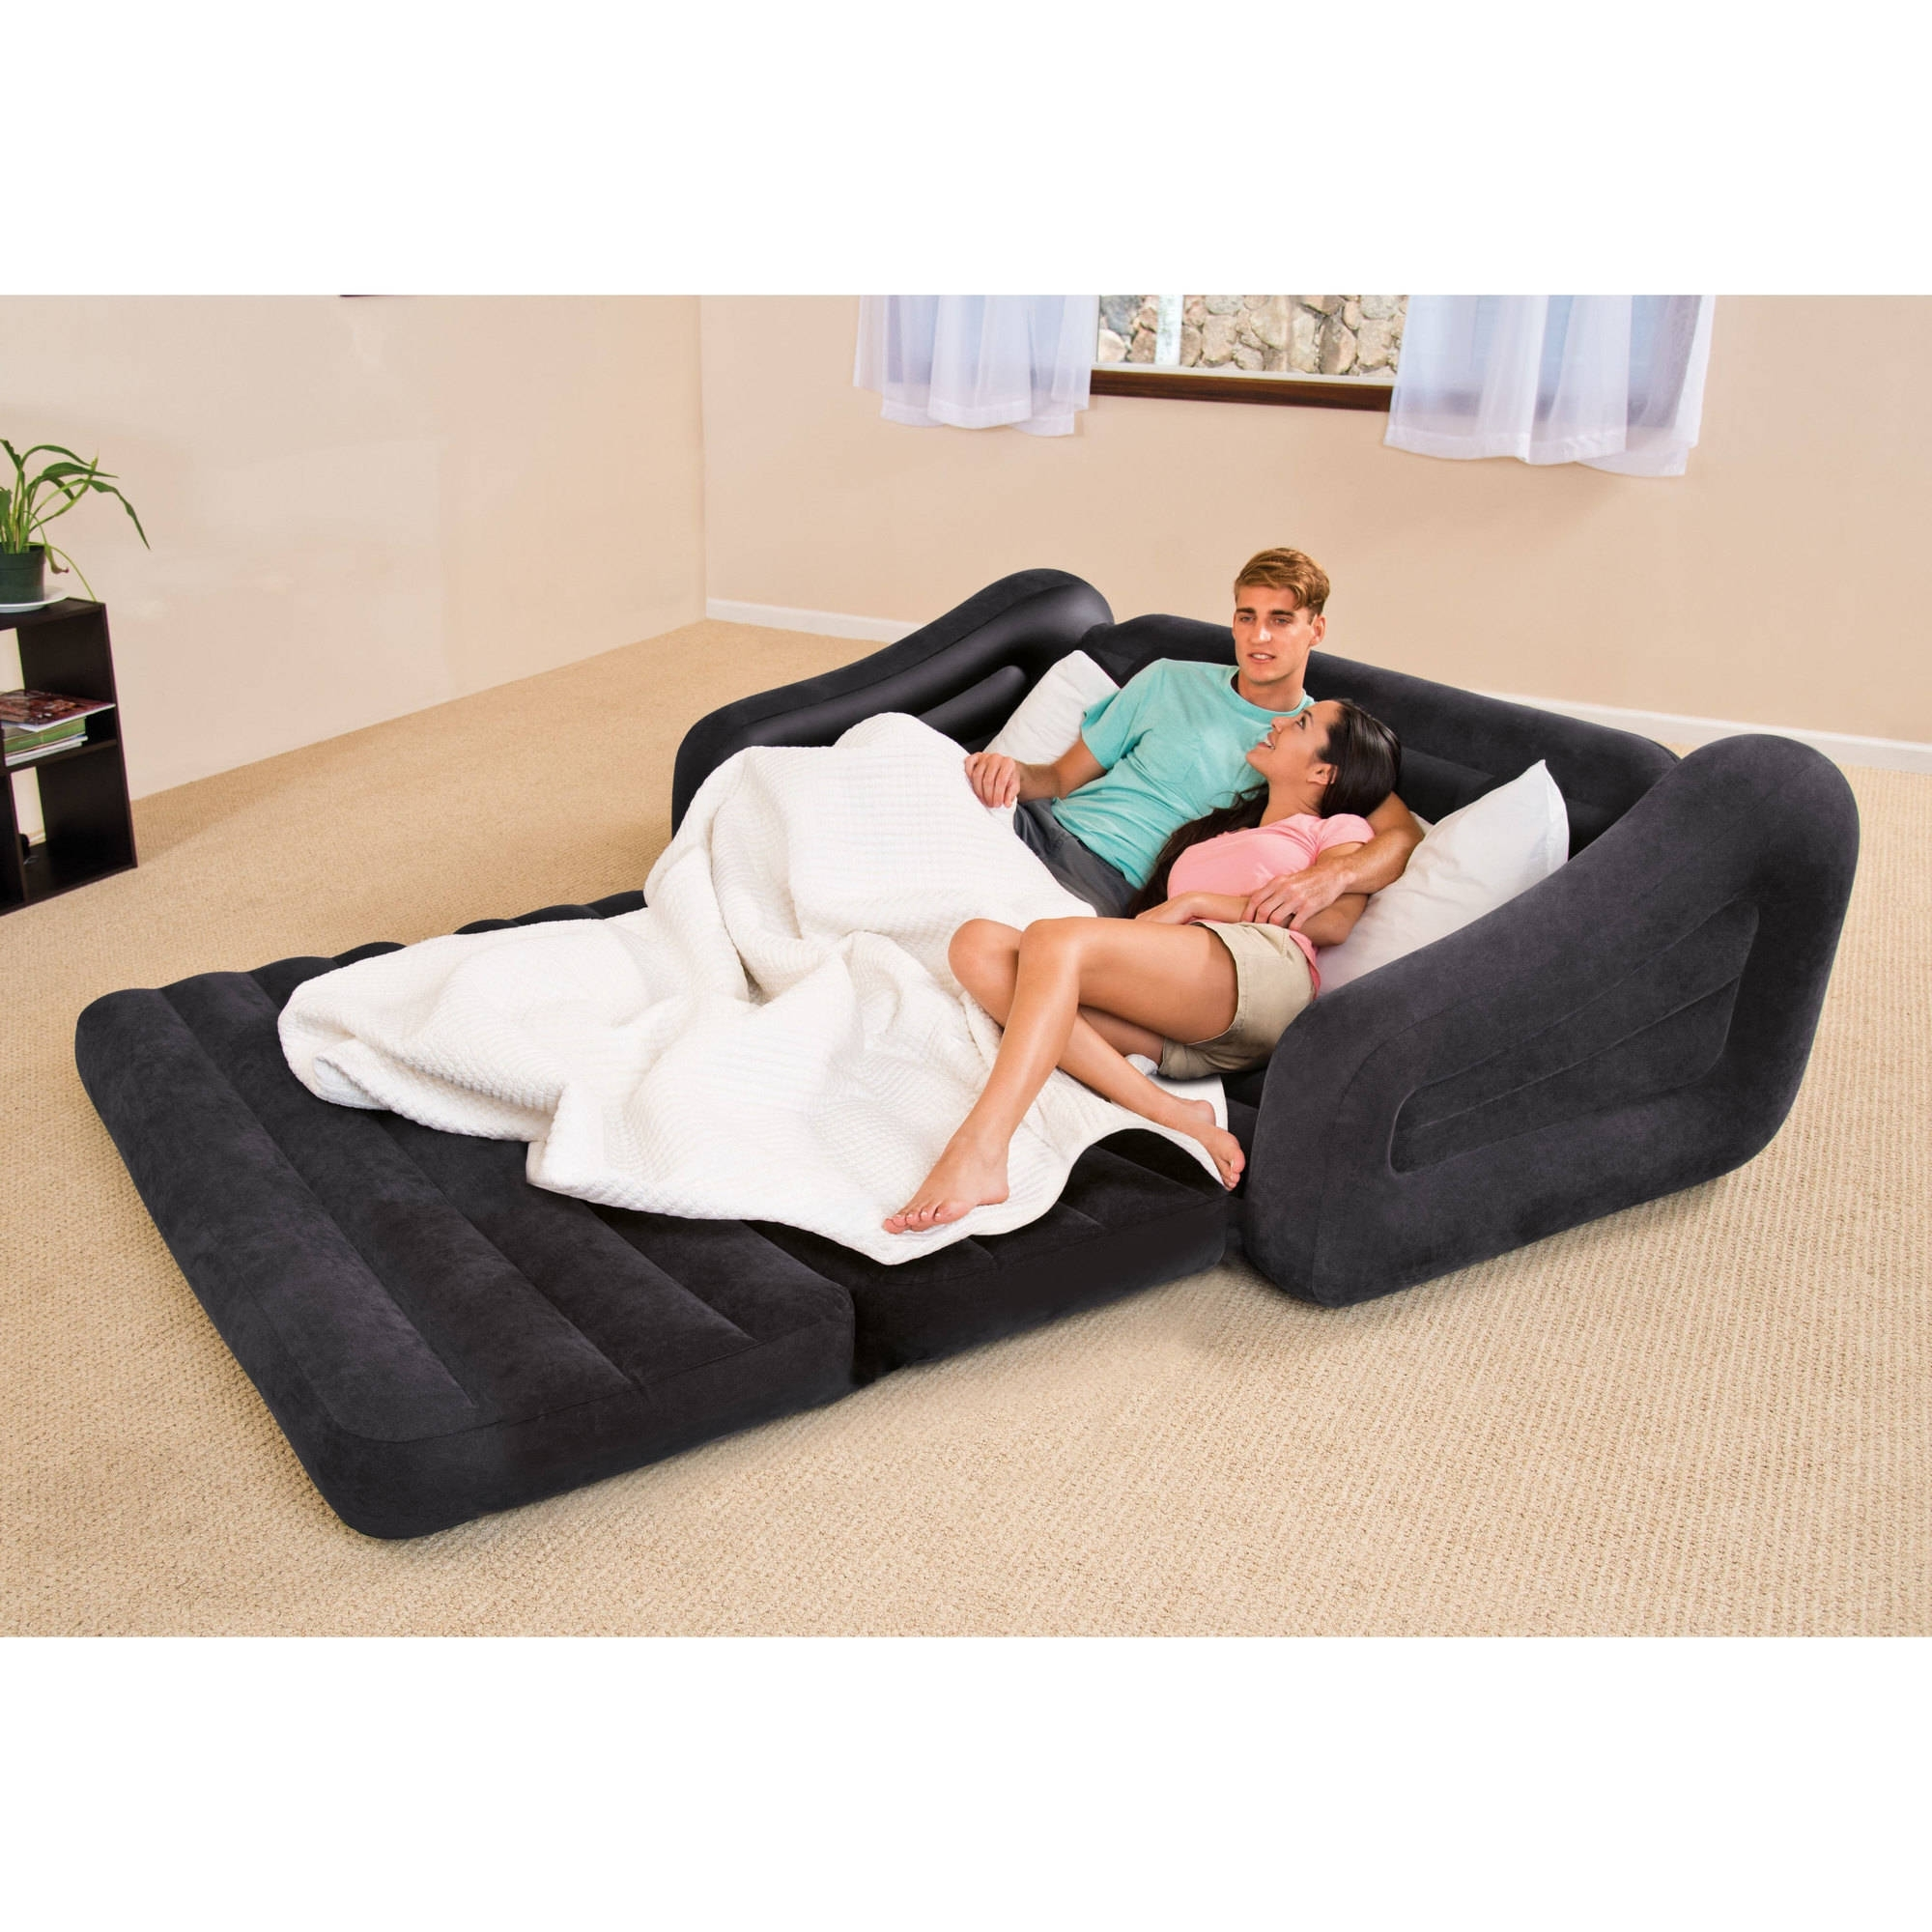 Intex Queen Inflatable Pull Out Sofa Bed – Walmart With Regard To Well Known Queen Size Sofas (View 20 of 20)